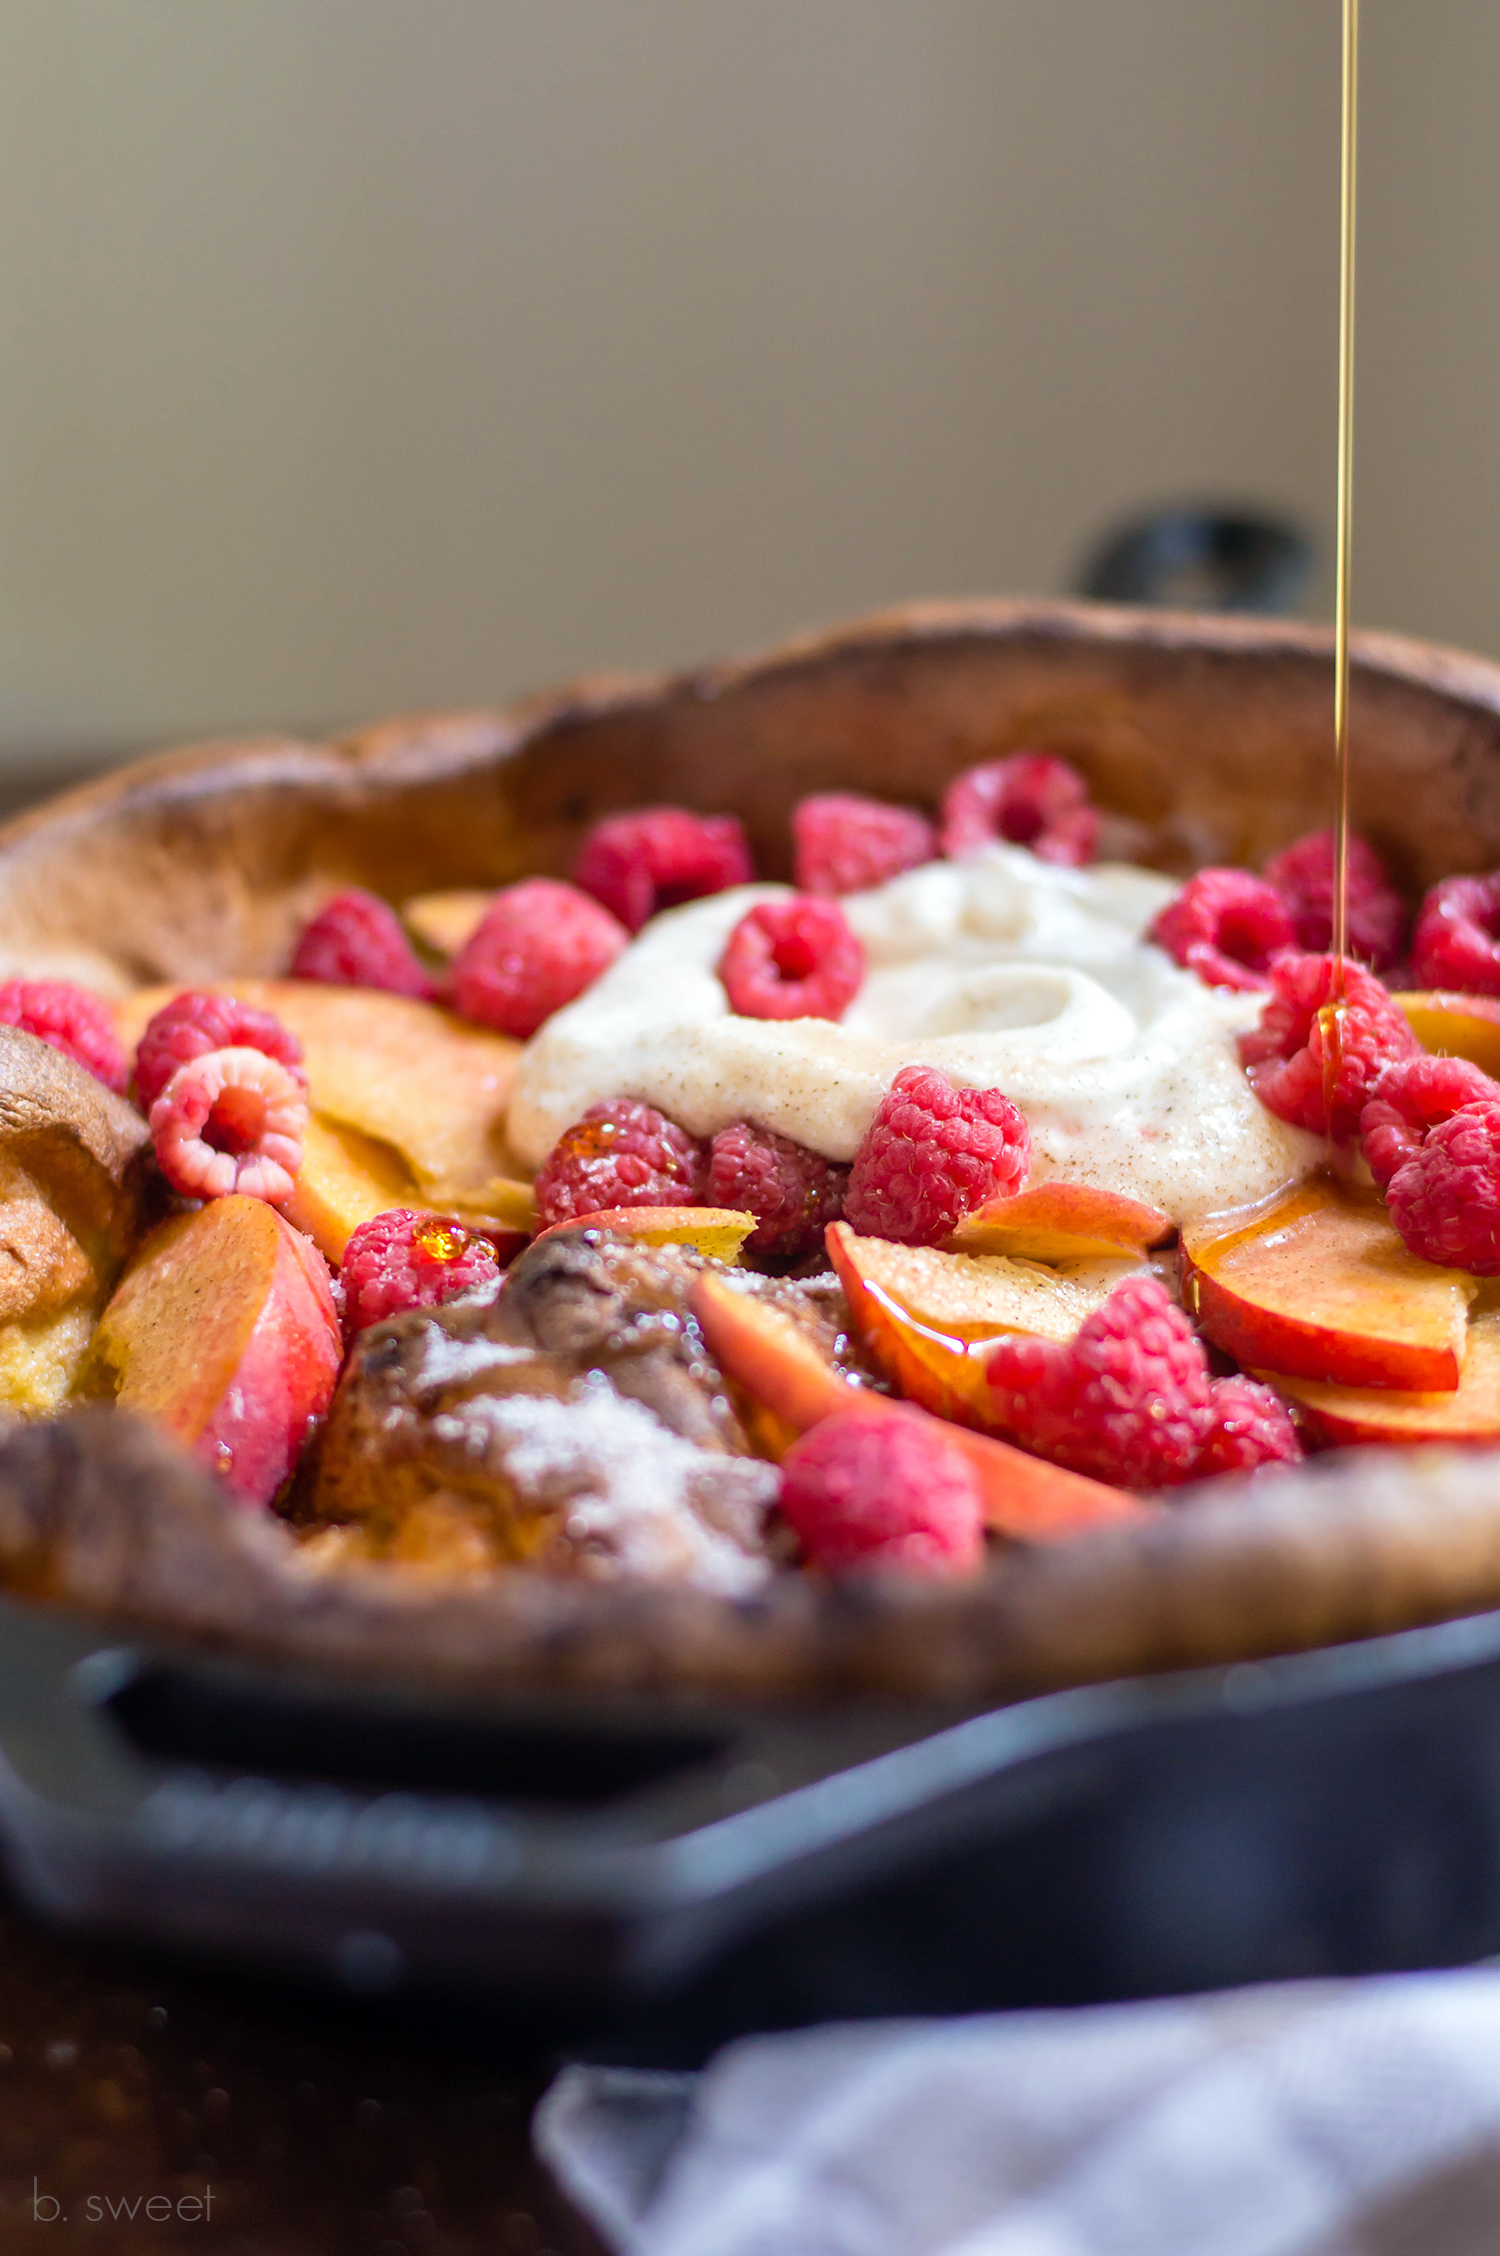 Cinnamon Sugar Dutch Baby Pancake - b. sweet